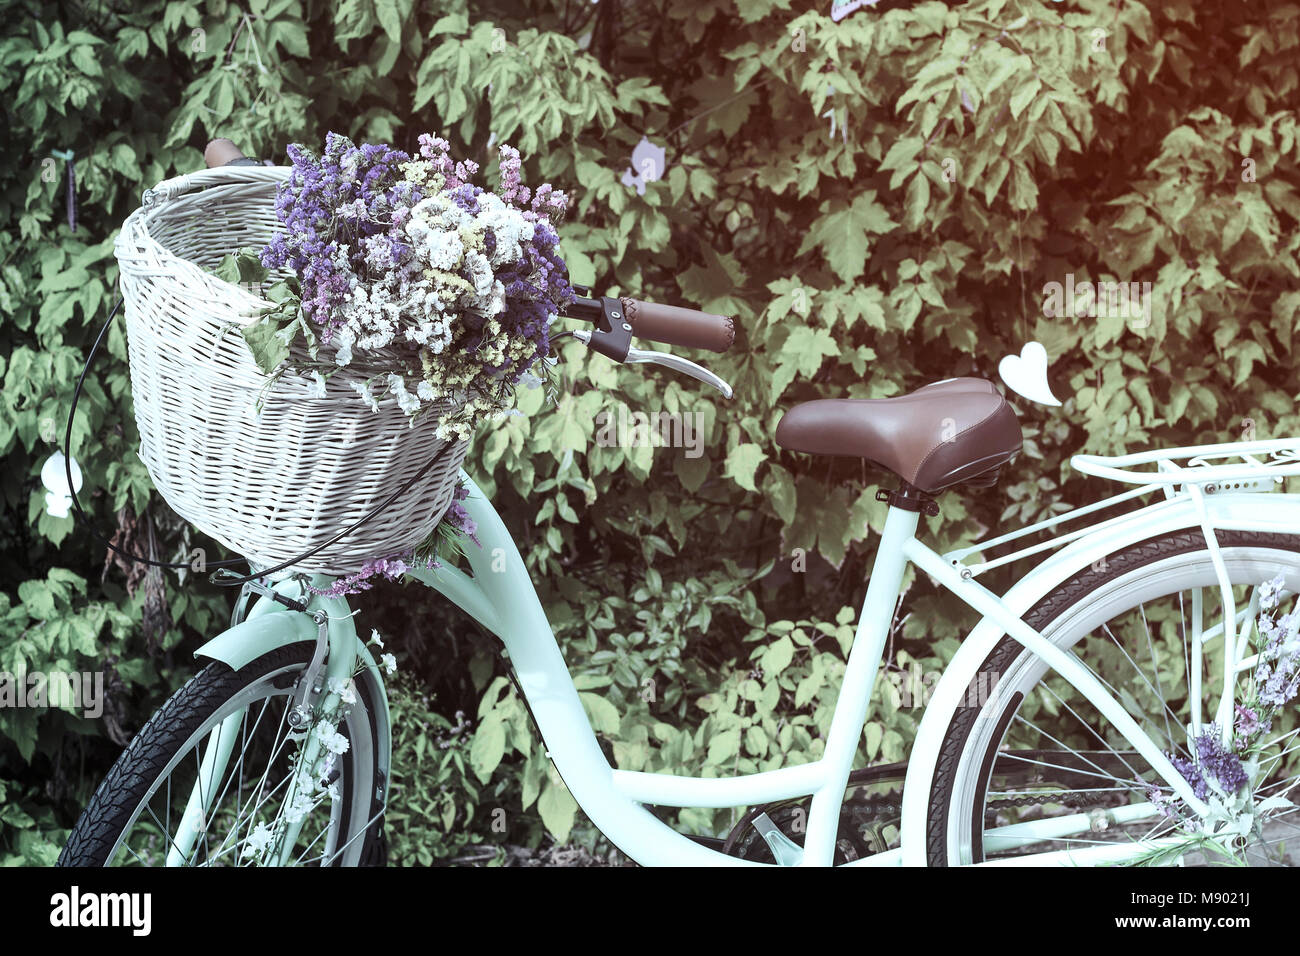 Bicycle with wicker basket of colorful dry flowers Limonium (Statice, sea-lavender, caspia or marsh-rosemary), pastel - Stock Image